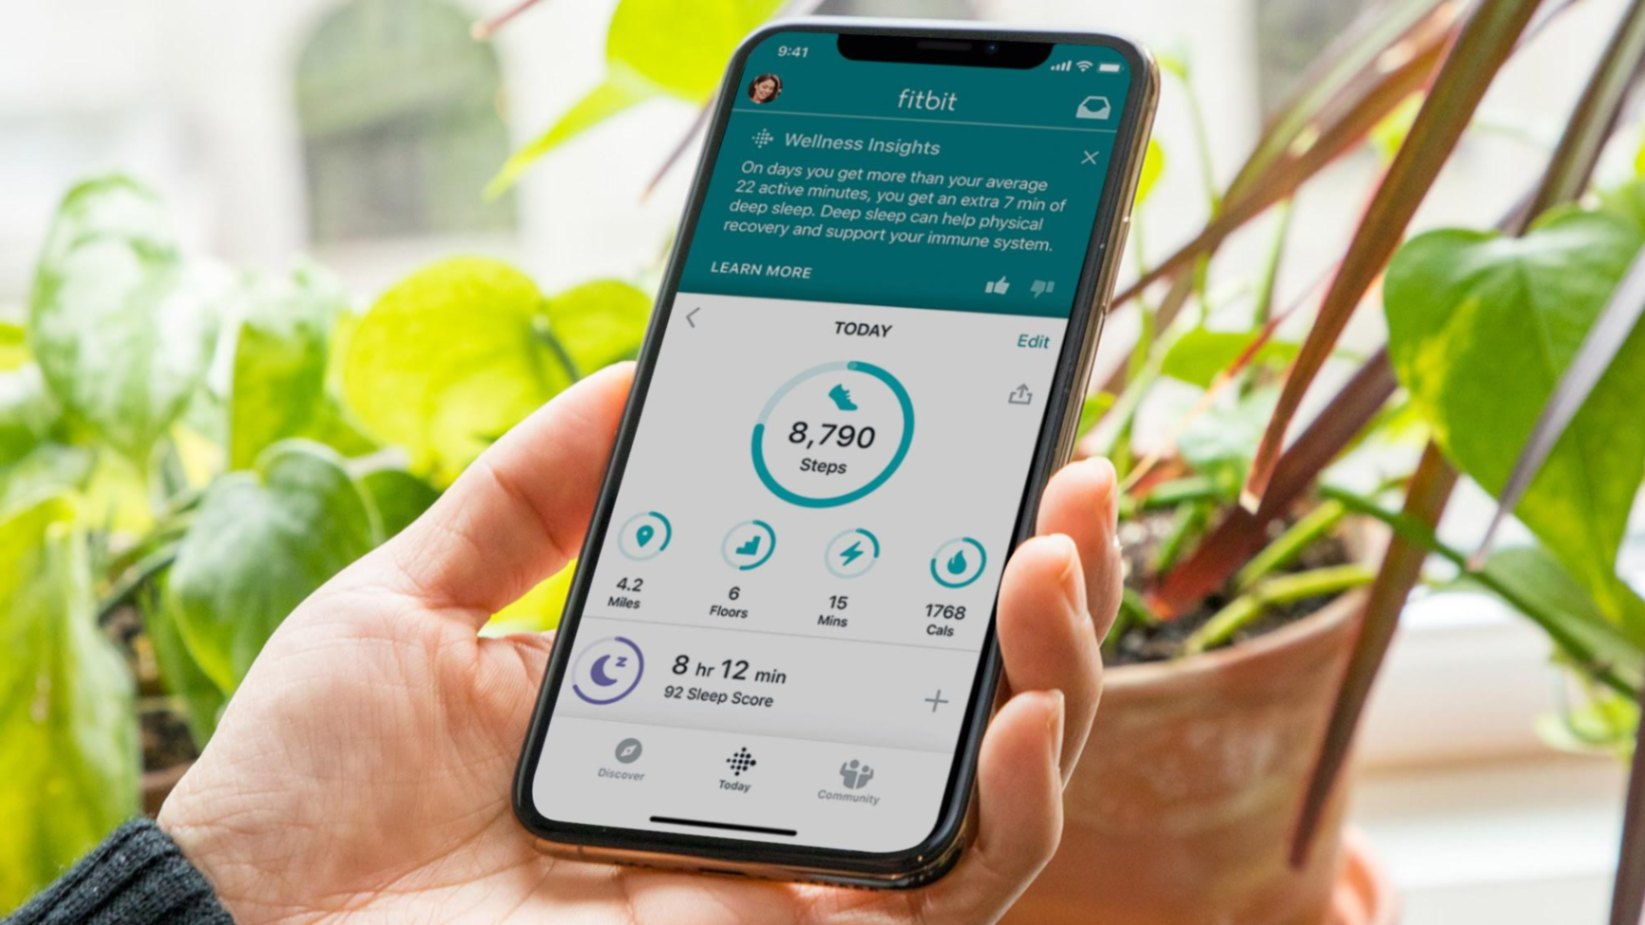 Fitbit Coach App - Exercise at Home